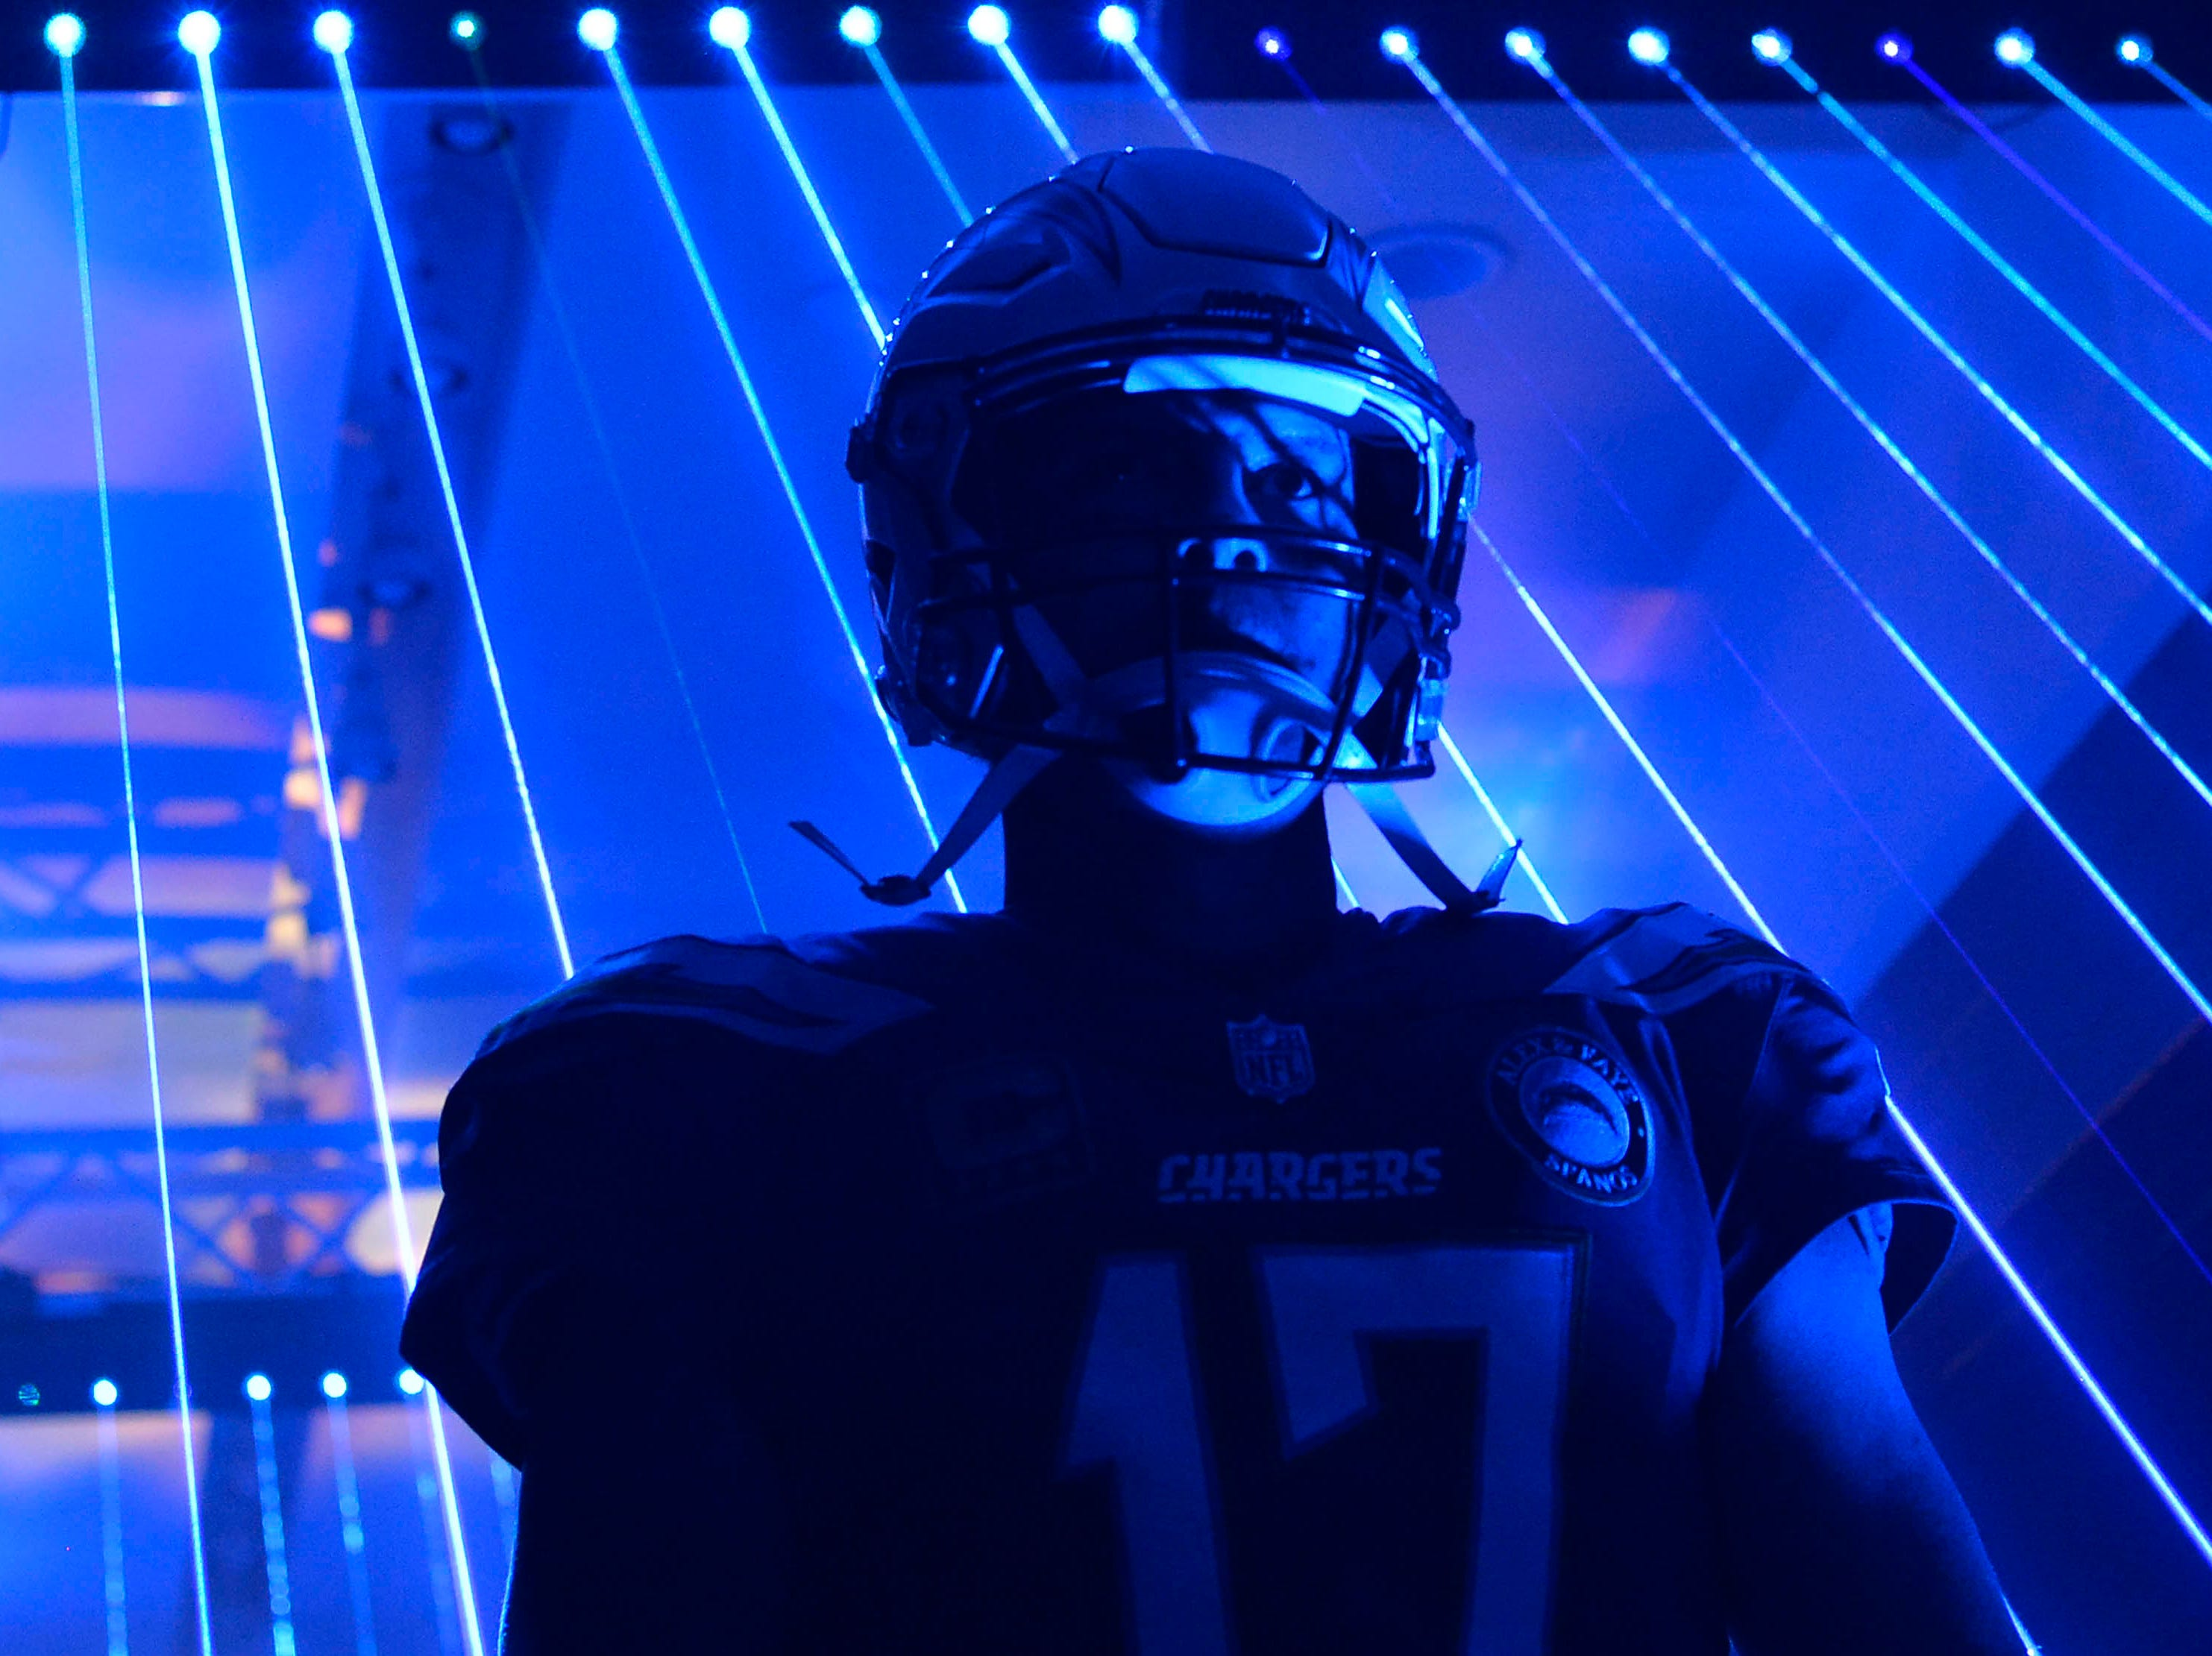 Chargers quarterback Philip Rivers walks to the field before the game against the Bengals.